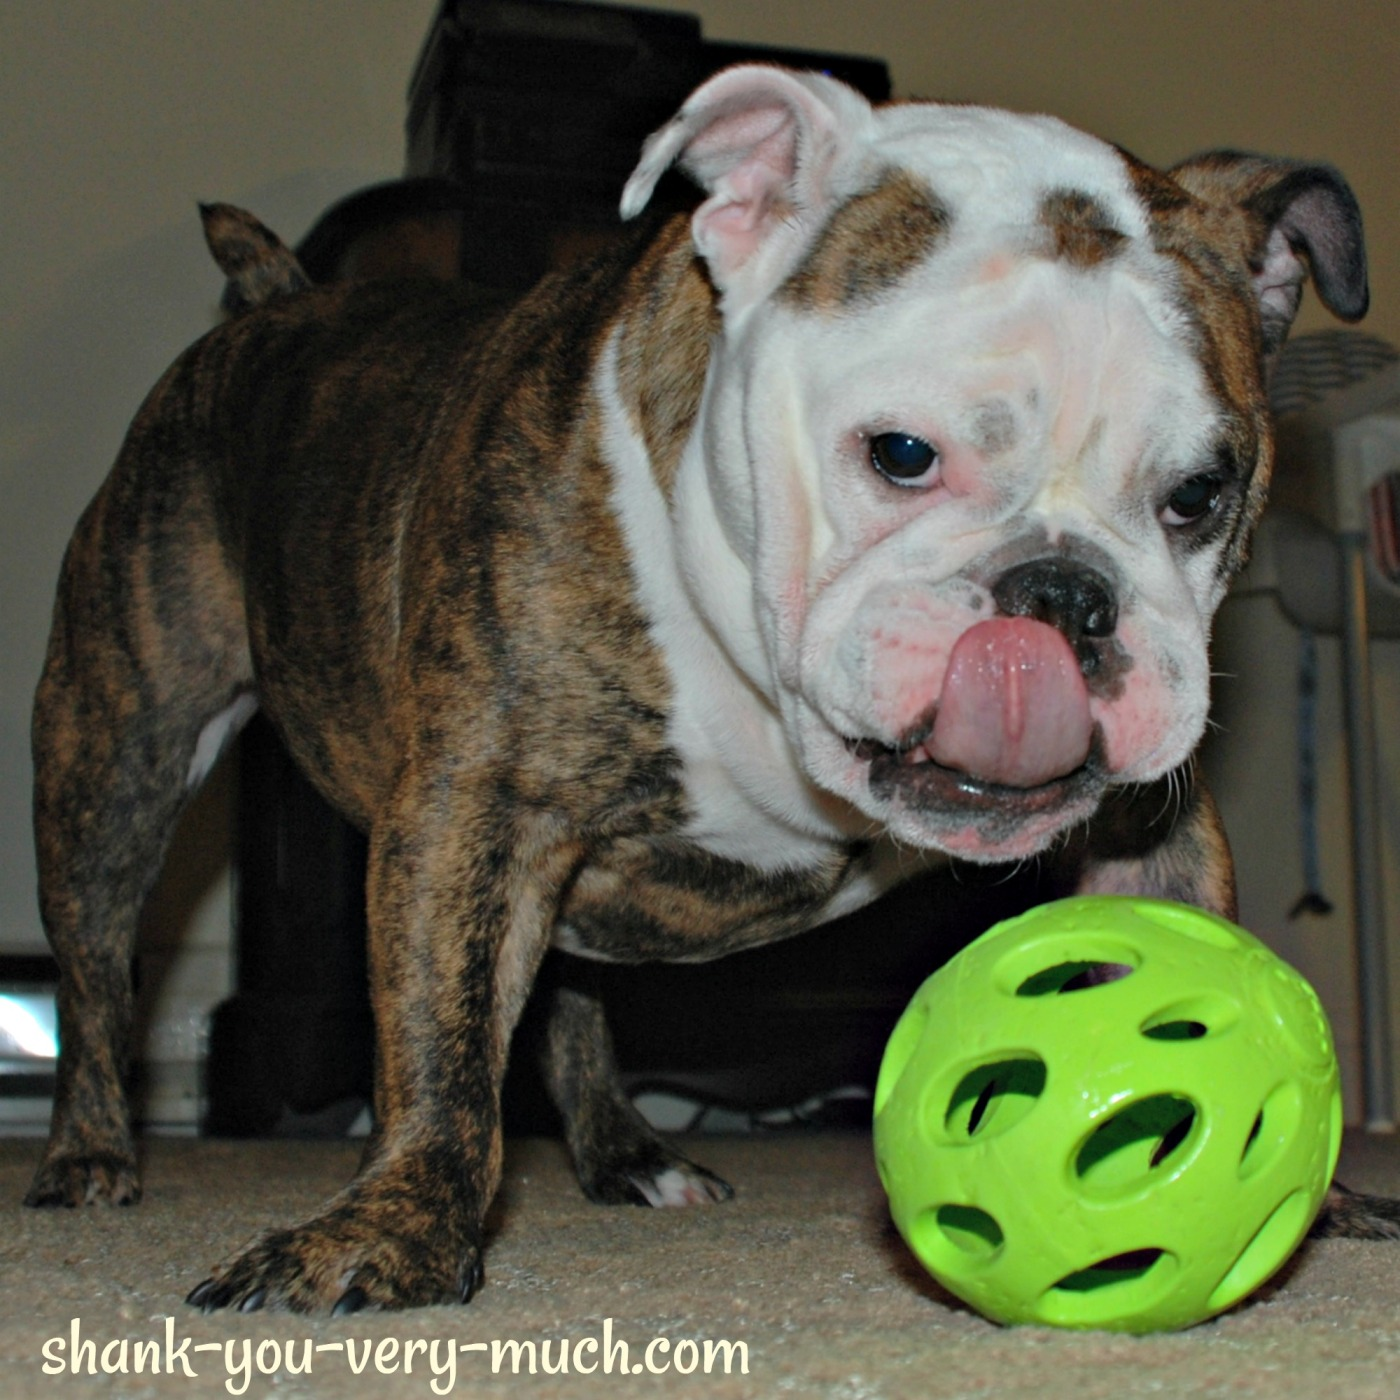 Lola standing over her ball, licking her lips.